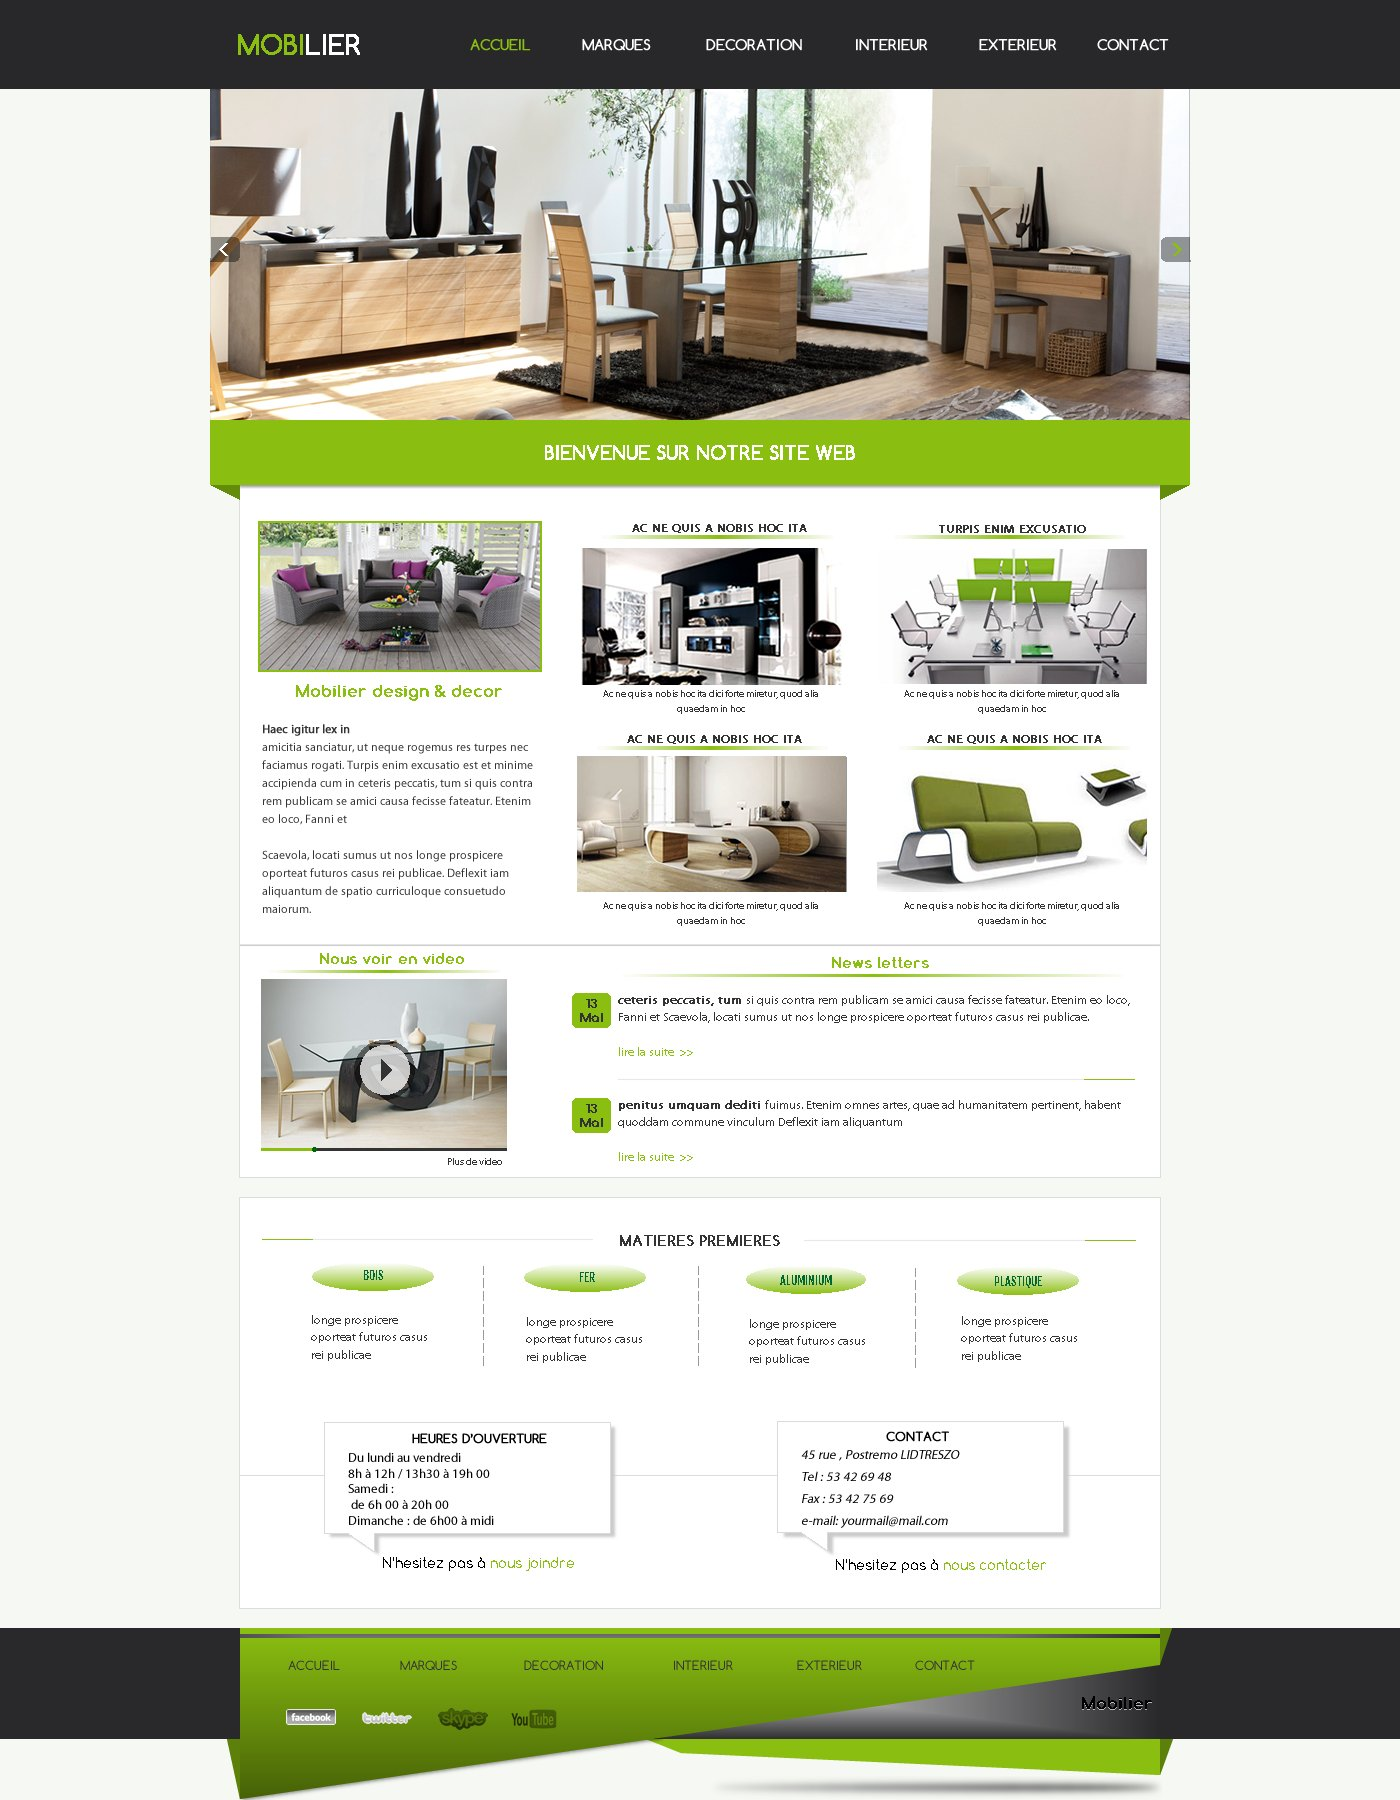 Cr ation de site web meuble mobilier i p w agence web for Site meuble